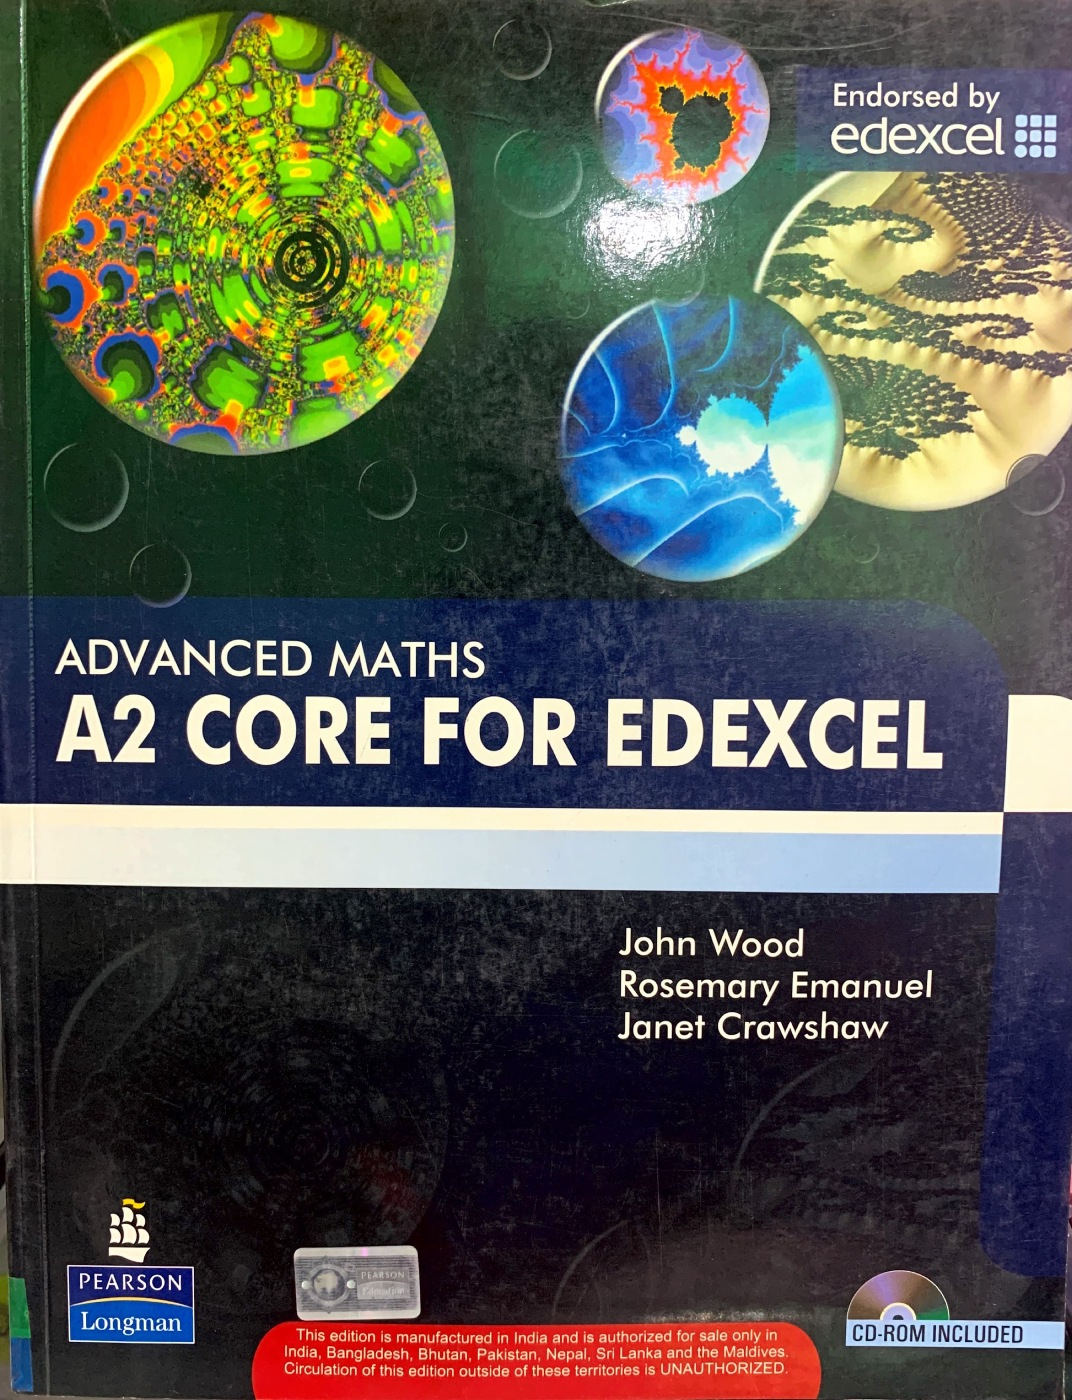 Advanced Maths A2 Core for Edexcel Coursebook